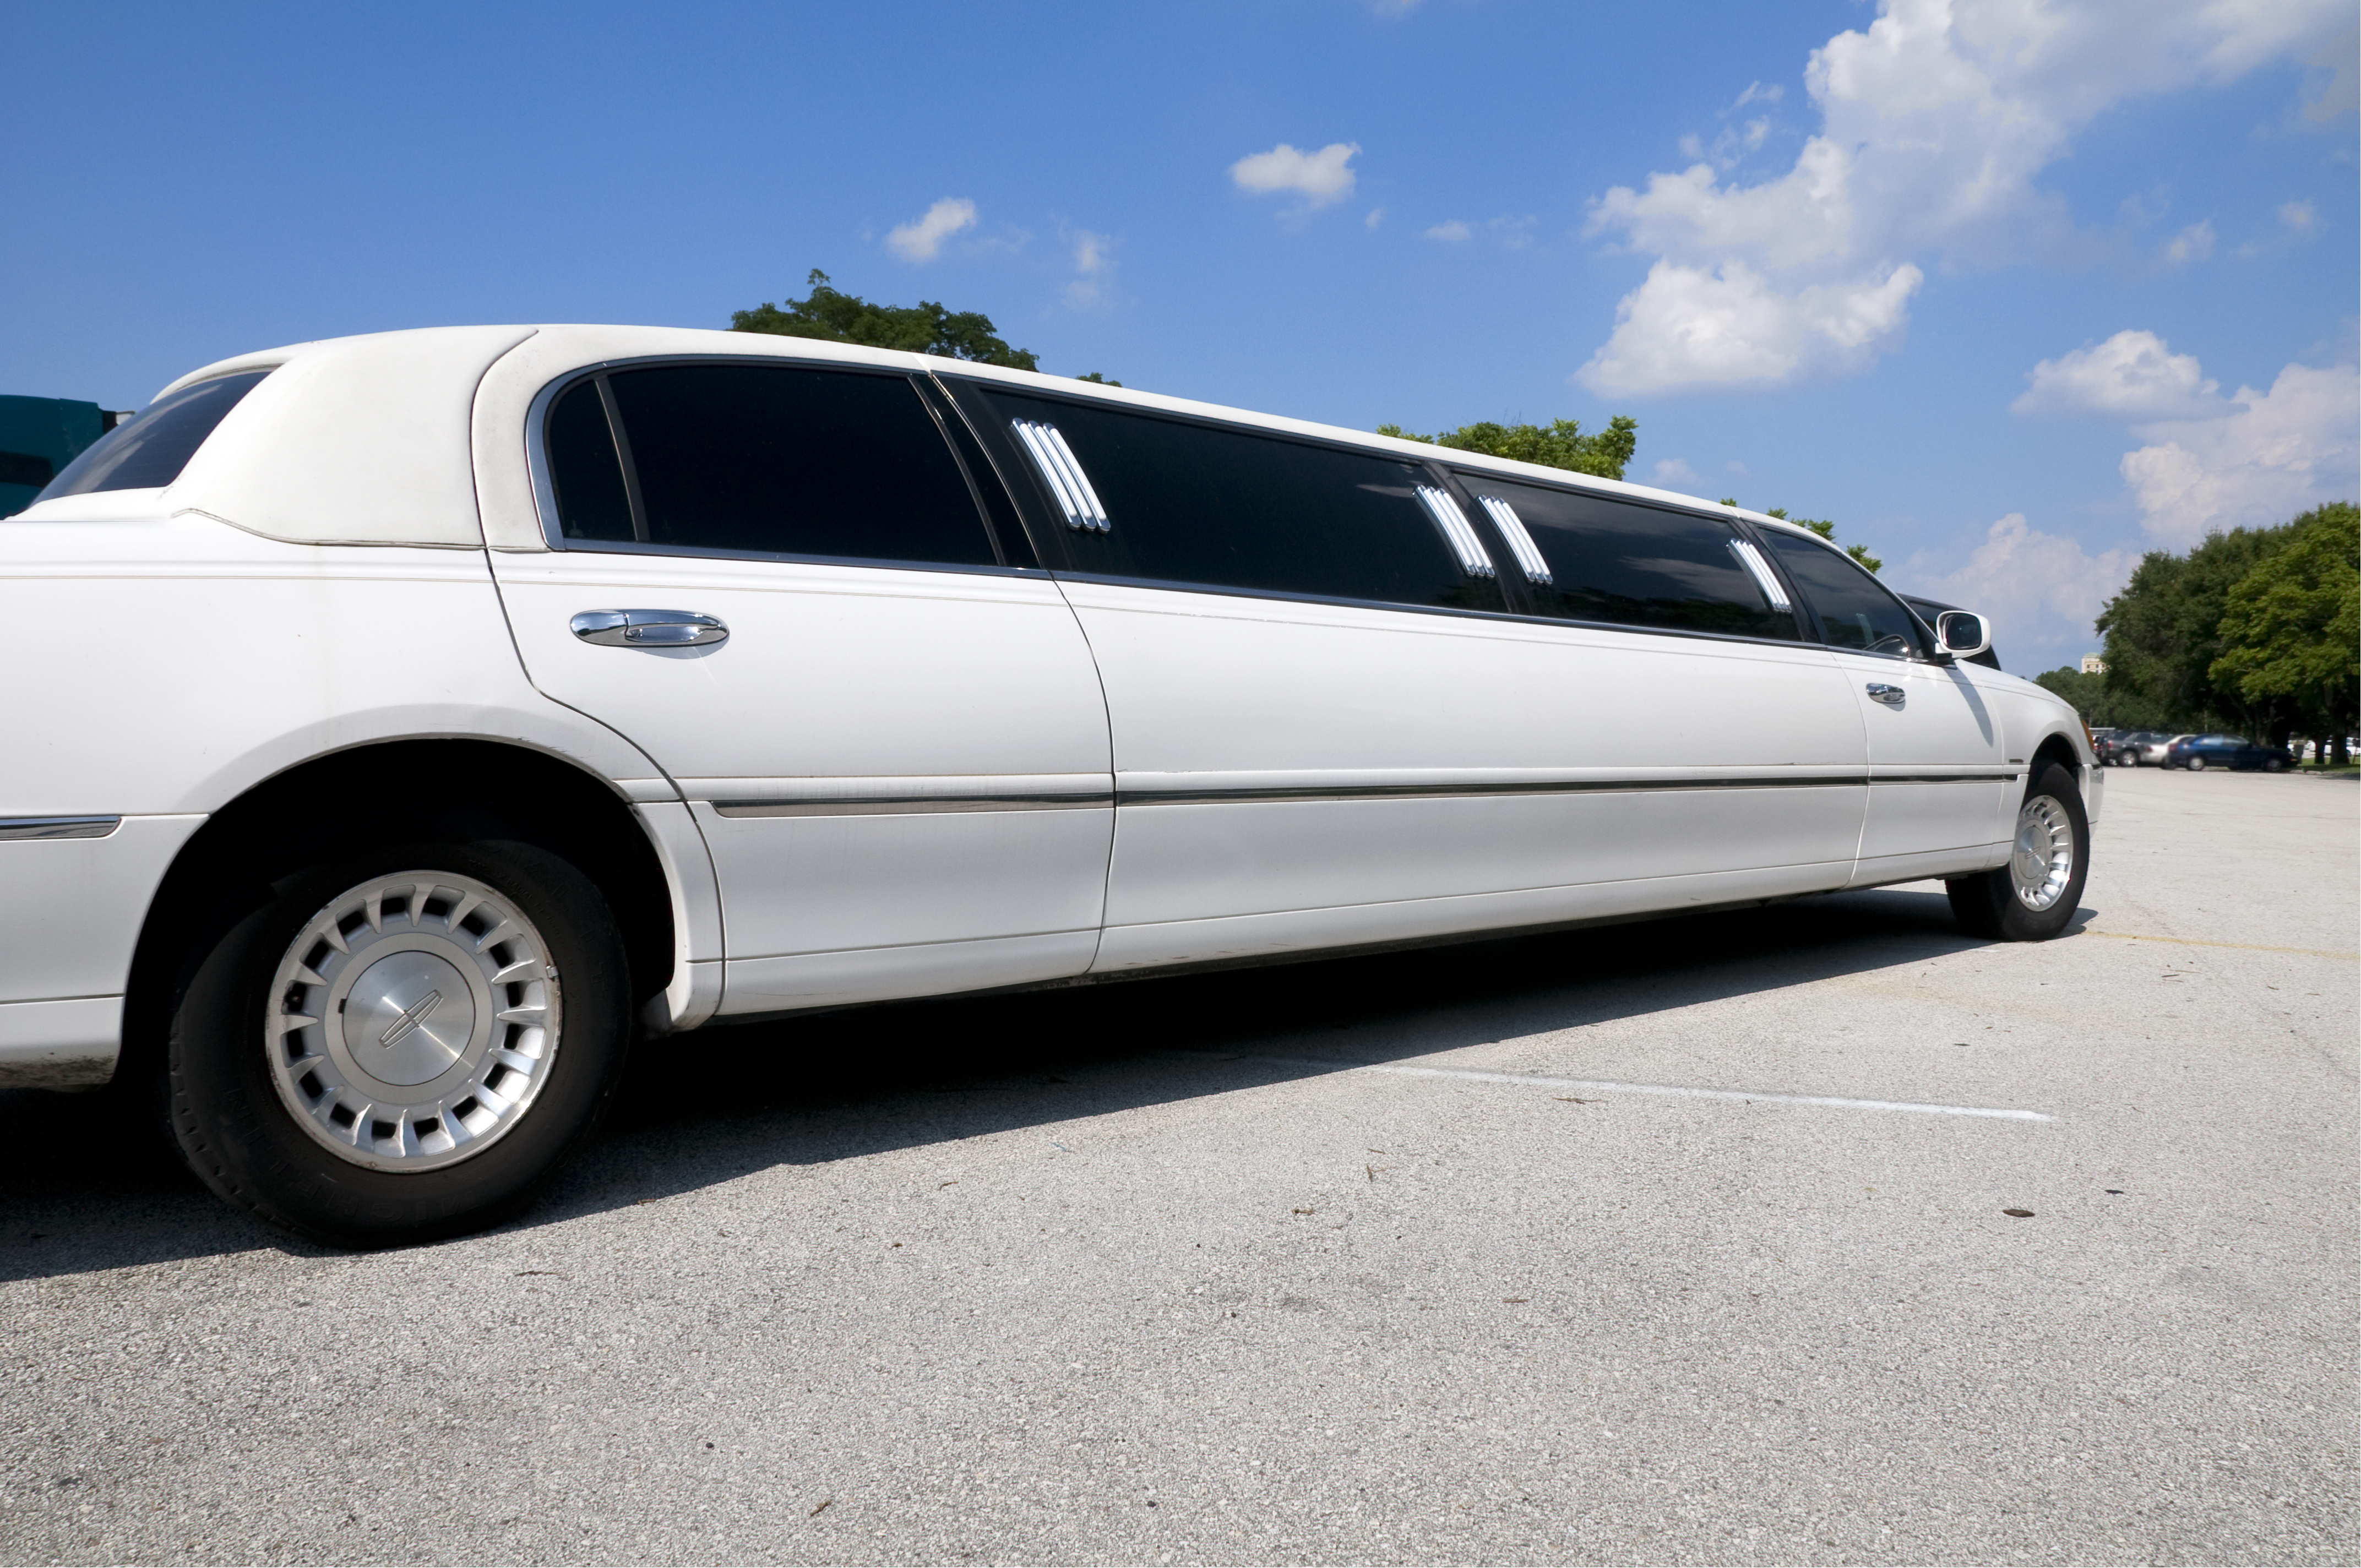 Limousine on the street